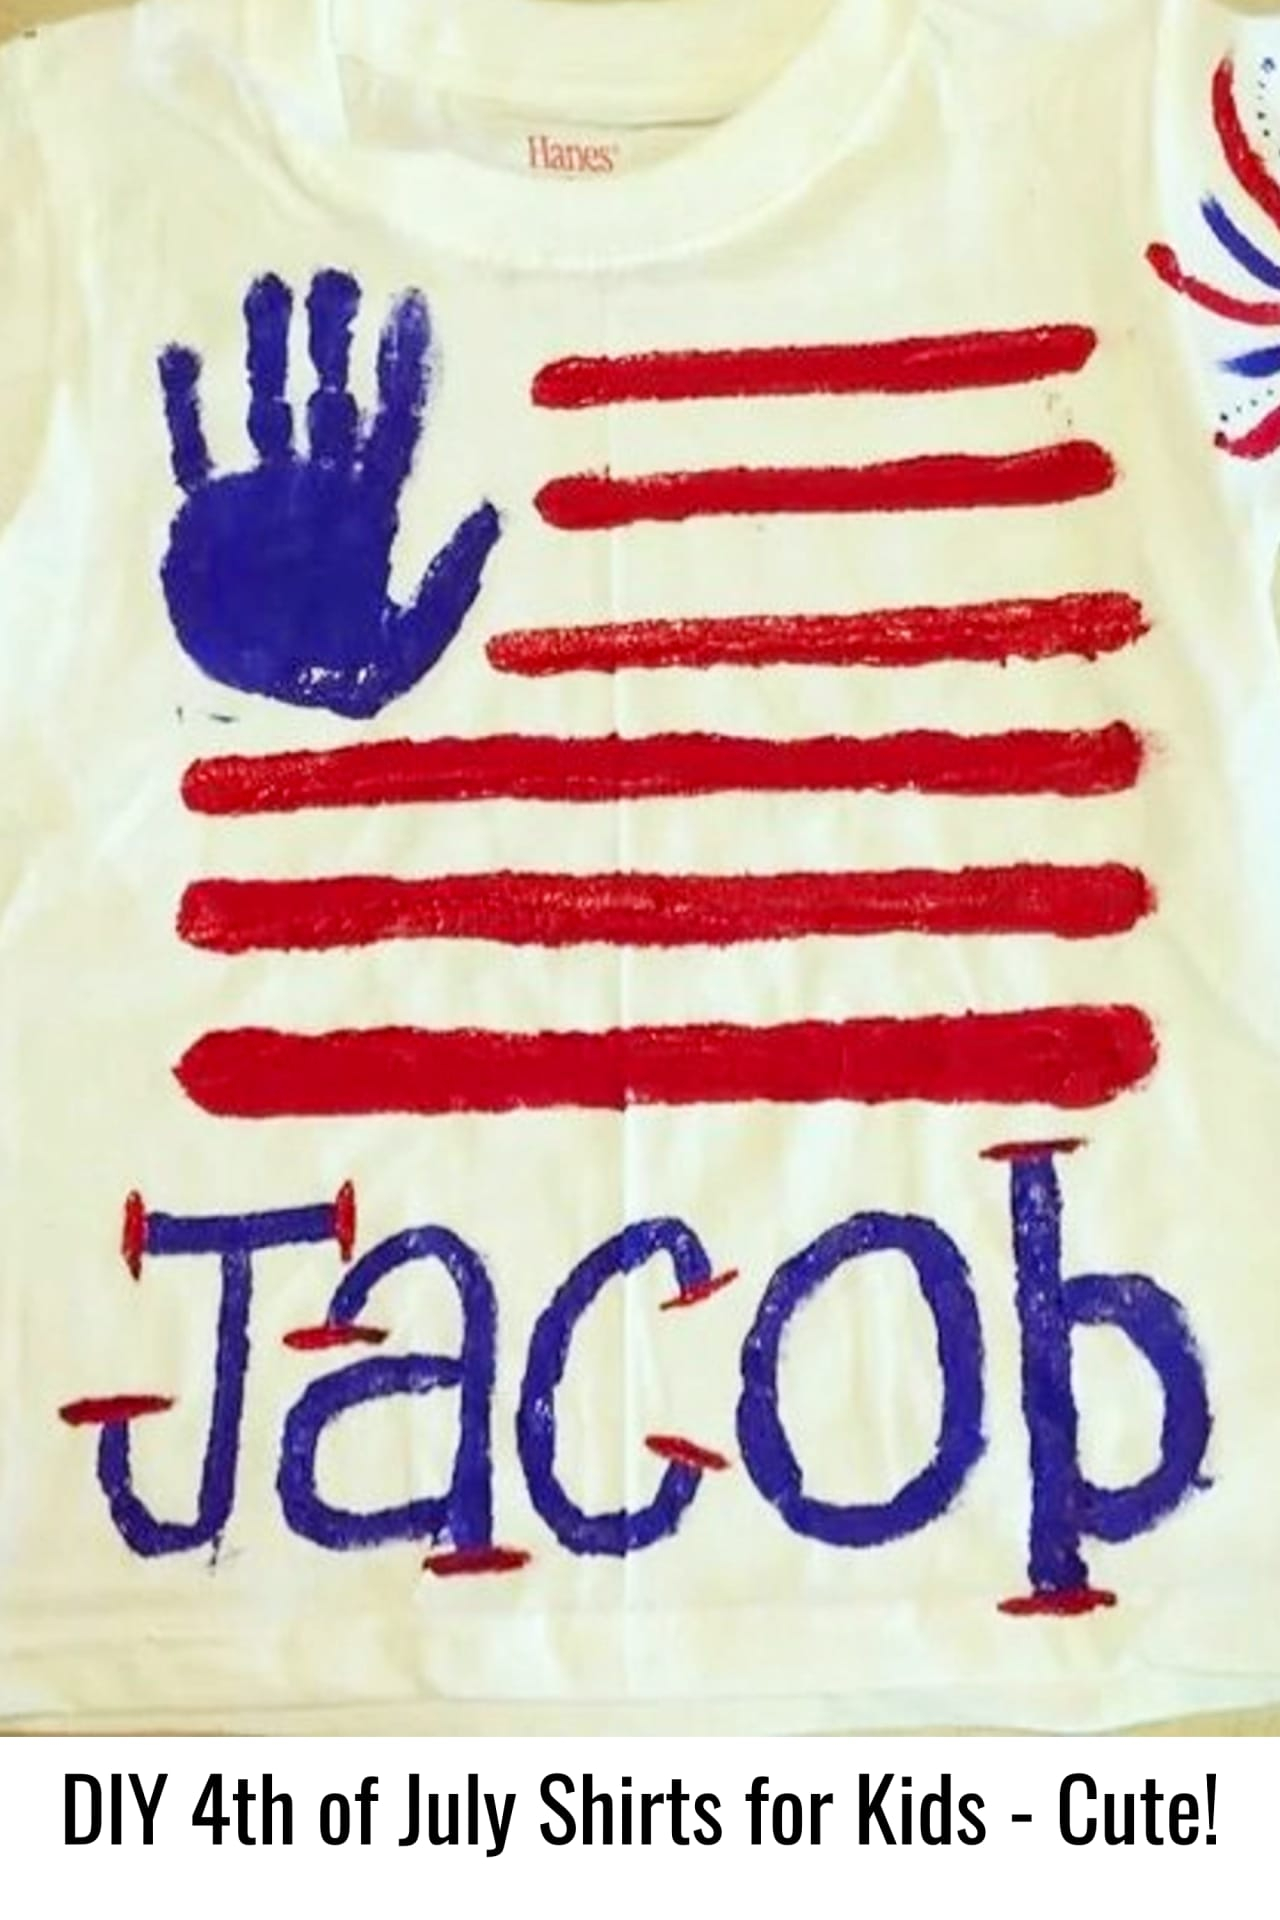 DIY 4th of July shirts for kids - 4th of July crafts for kids - handprint t-shirts for kids to make